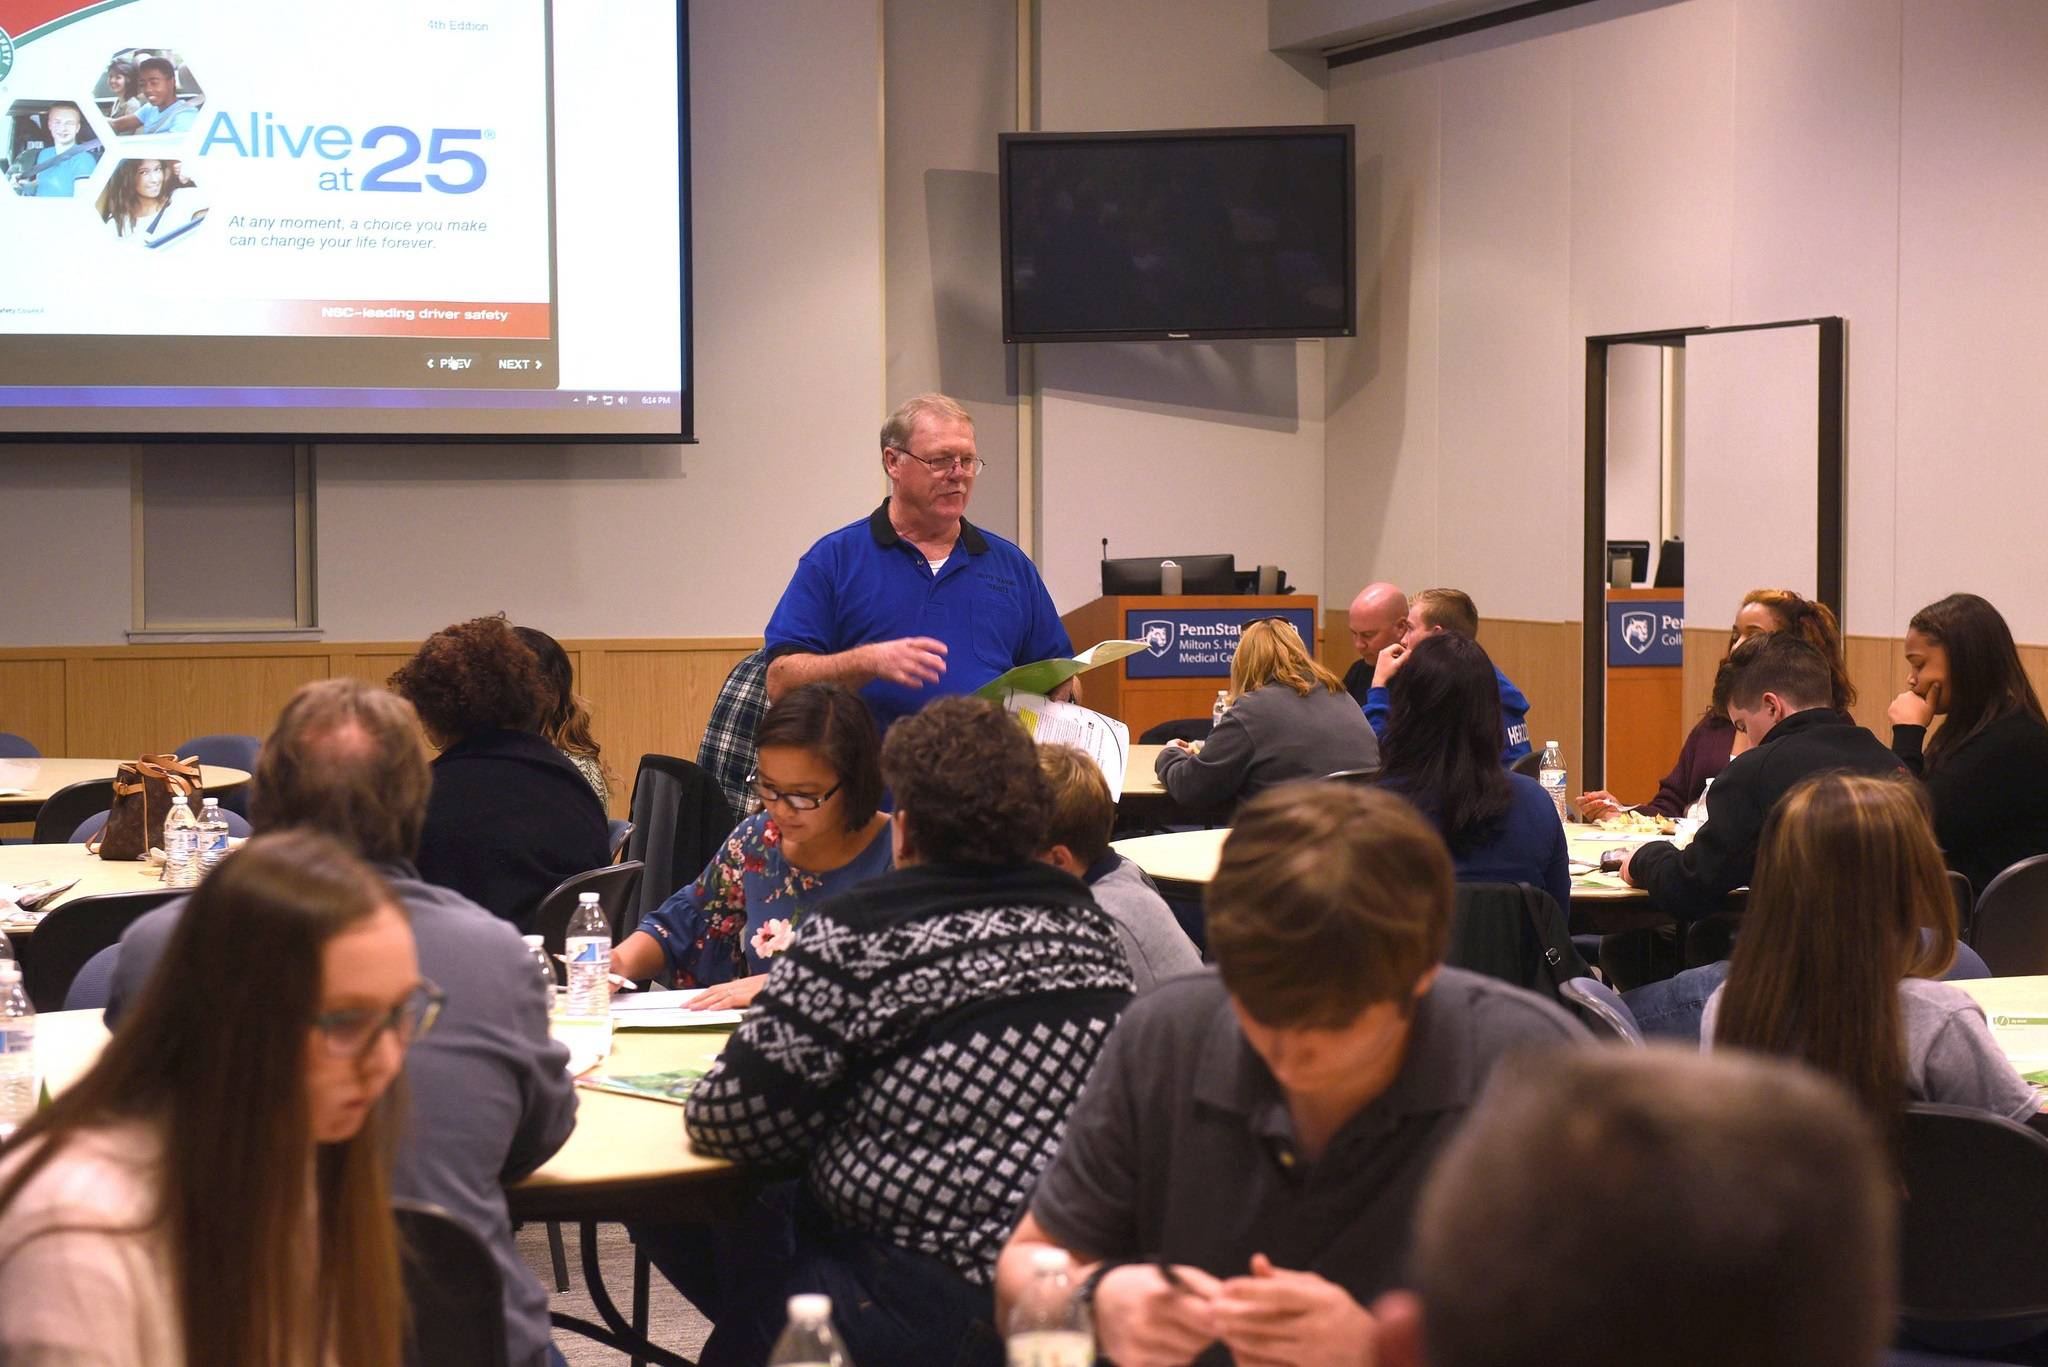 """Robert Gilmer, an Alive at 25 instructor, stands in front of a group of teens and parents who are sitting at round tables and looking down at their phones. Behind him is a screen with a PowerPoint slide with the text """"Alive at 25."""""""